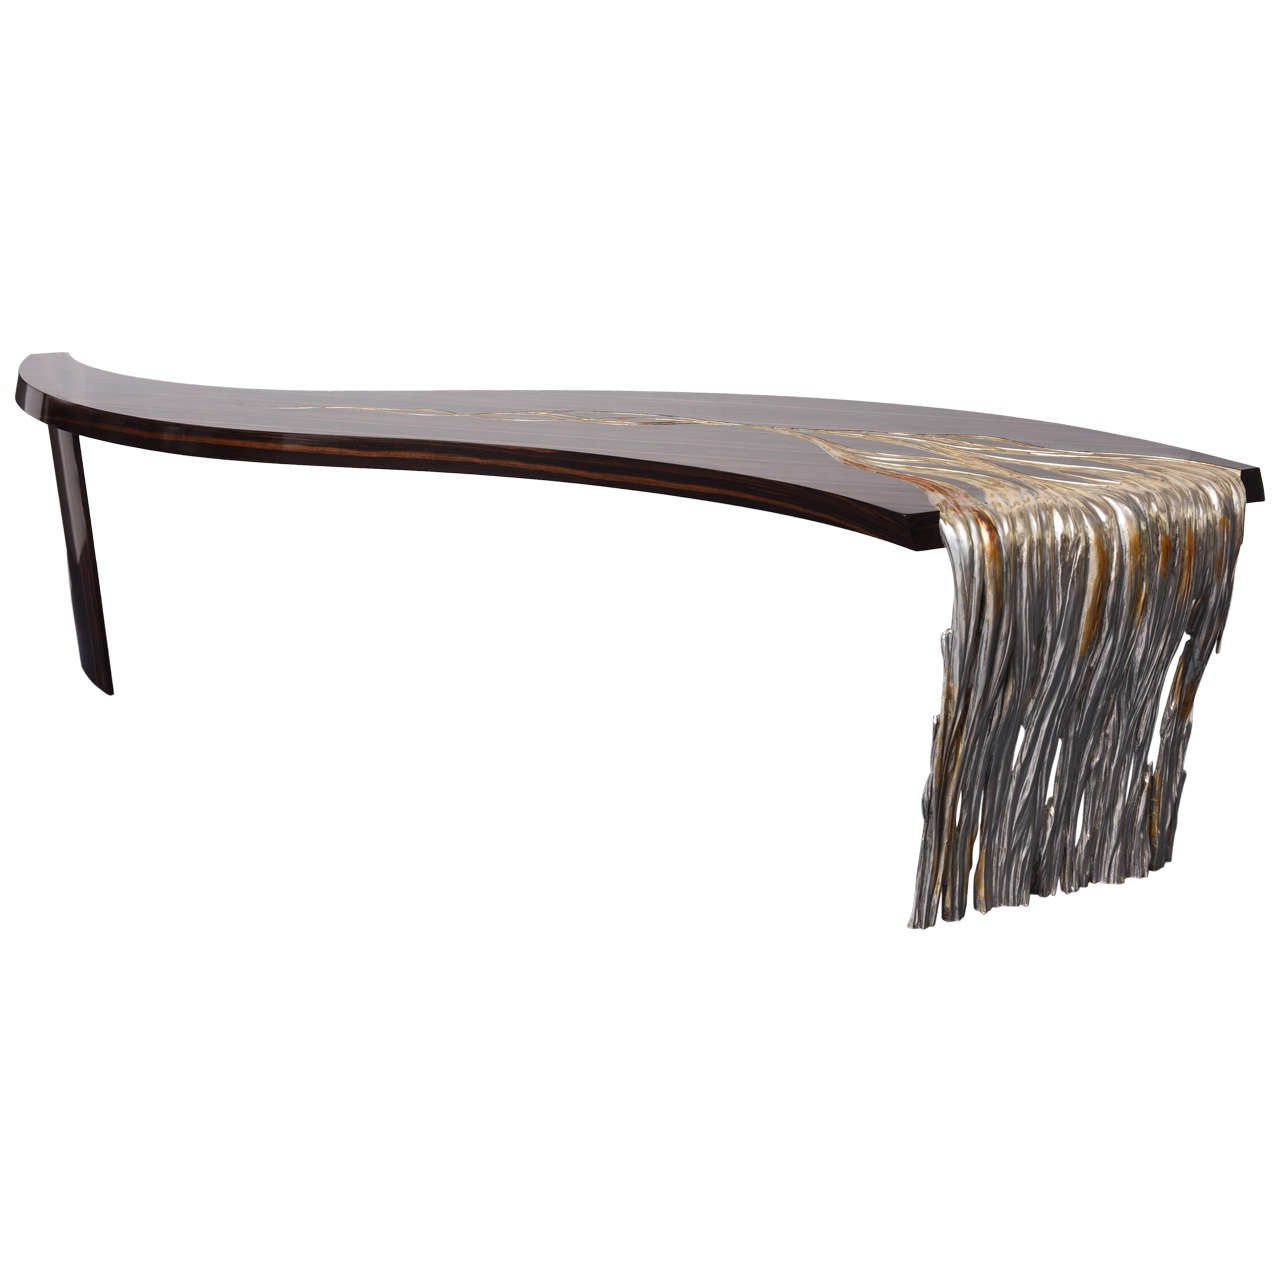 Exceptional Oversized Midcentury Dramatic Macassar Console Table 1